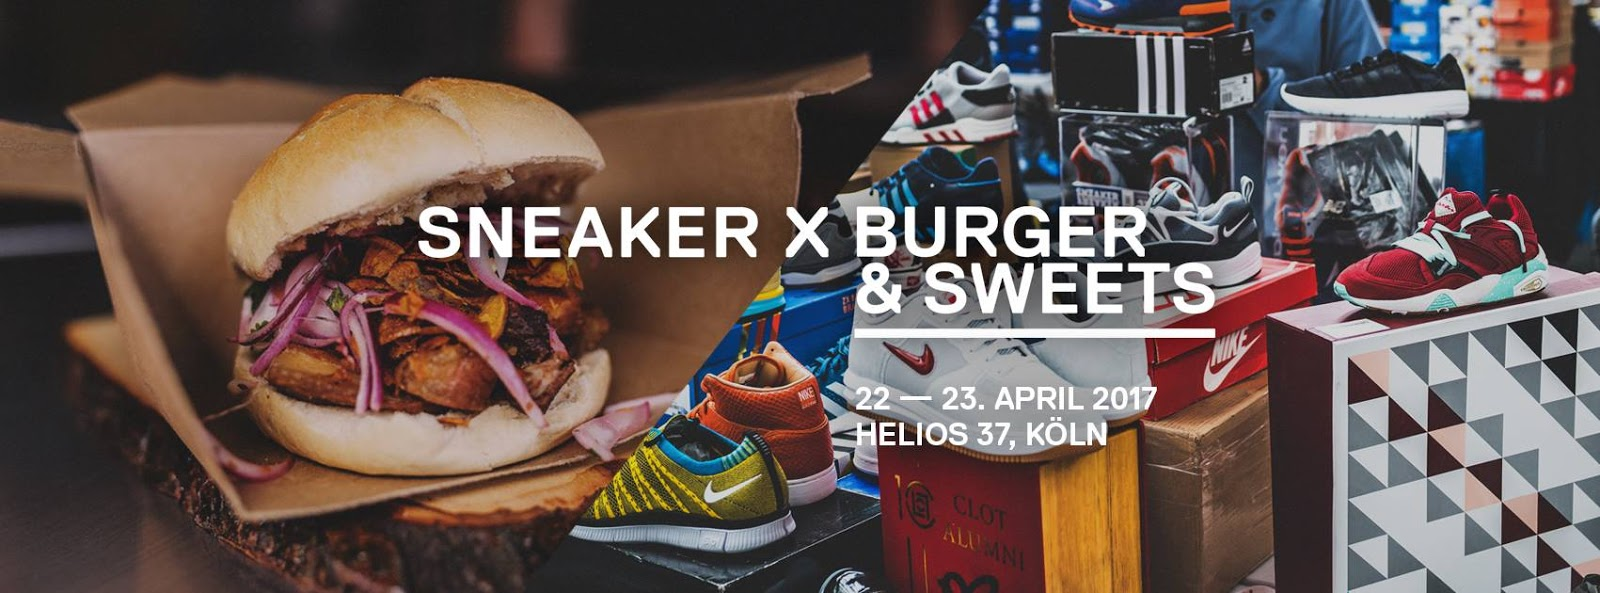 Sneaker X Burger & Sweets Event in Köln | Gewinne Weekendtickets inkl. Aftershowparty